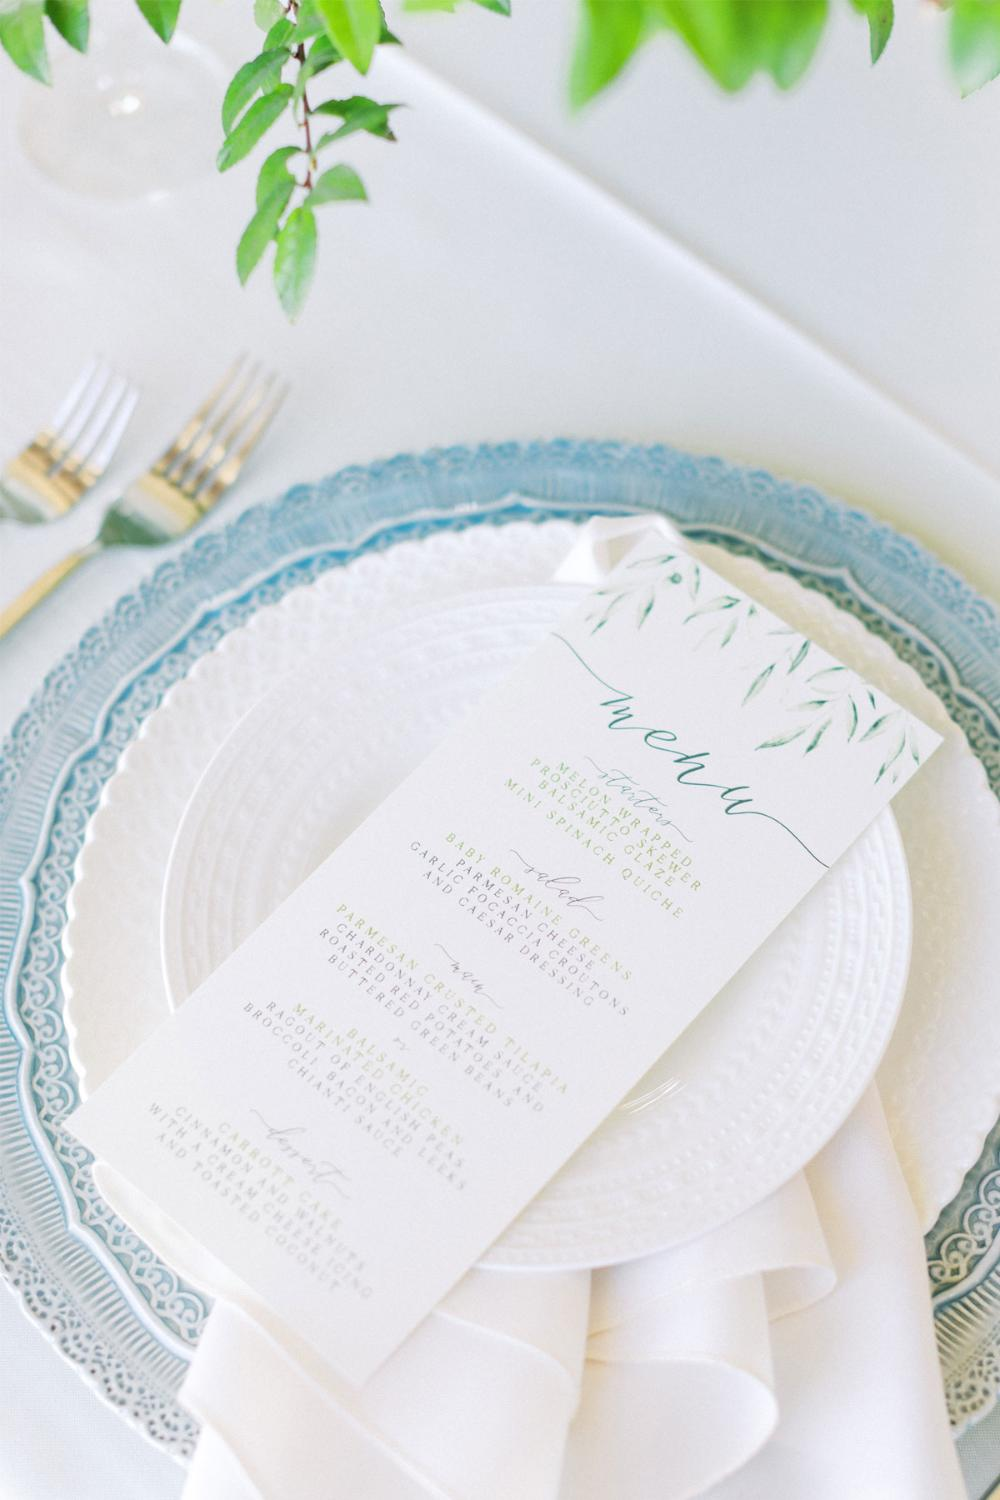 Greenery Leaves Wedding Menu for Place Setting in Green and Grey with Calligraphy